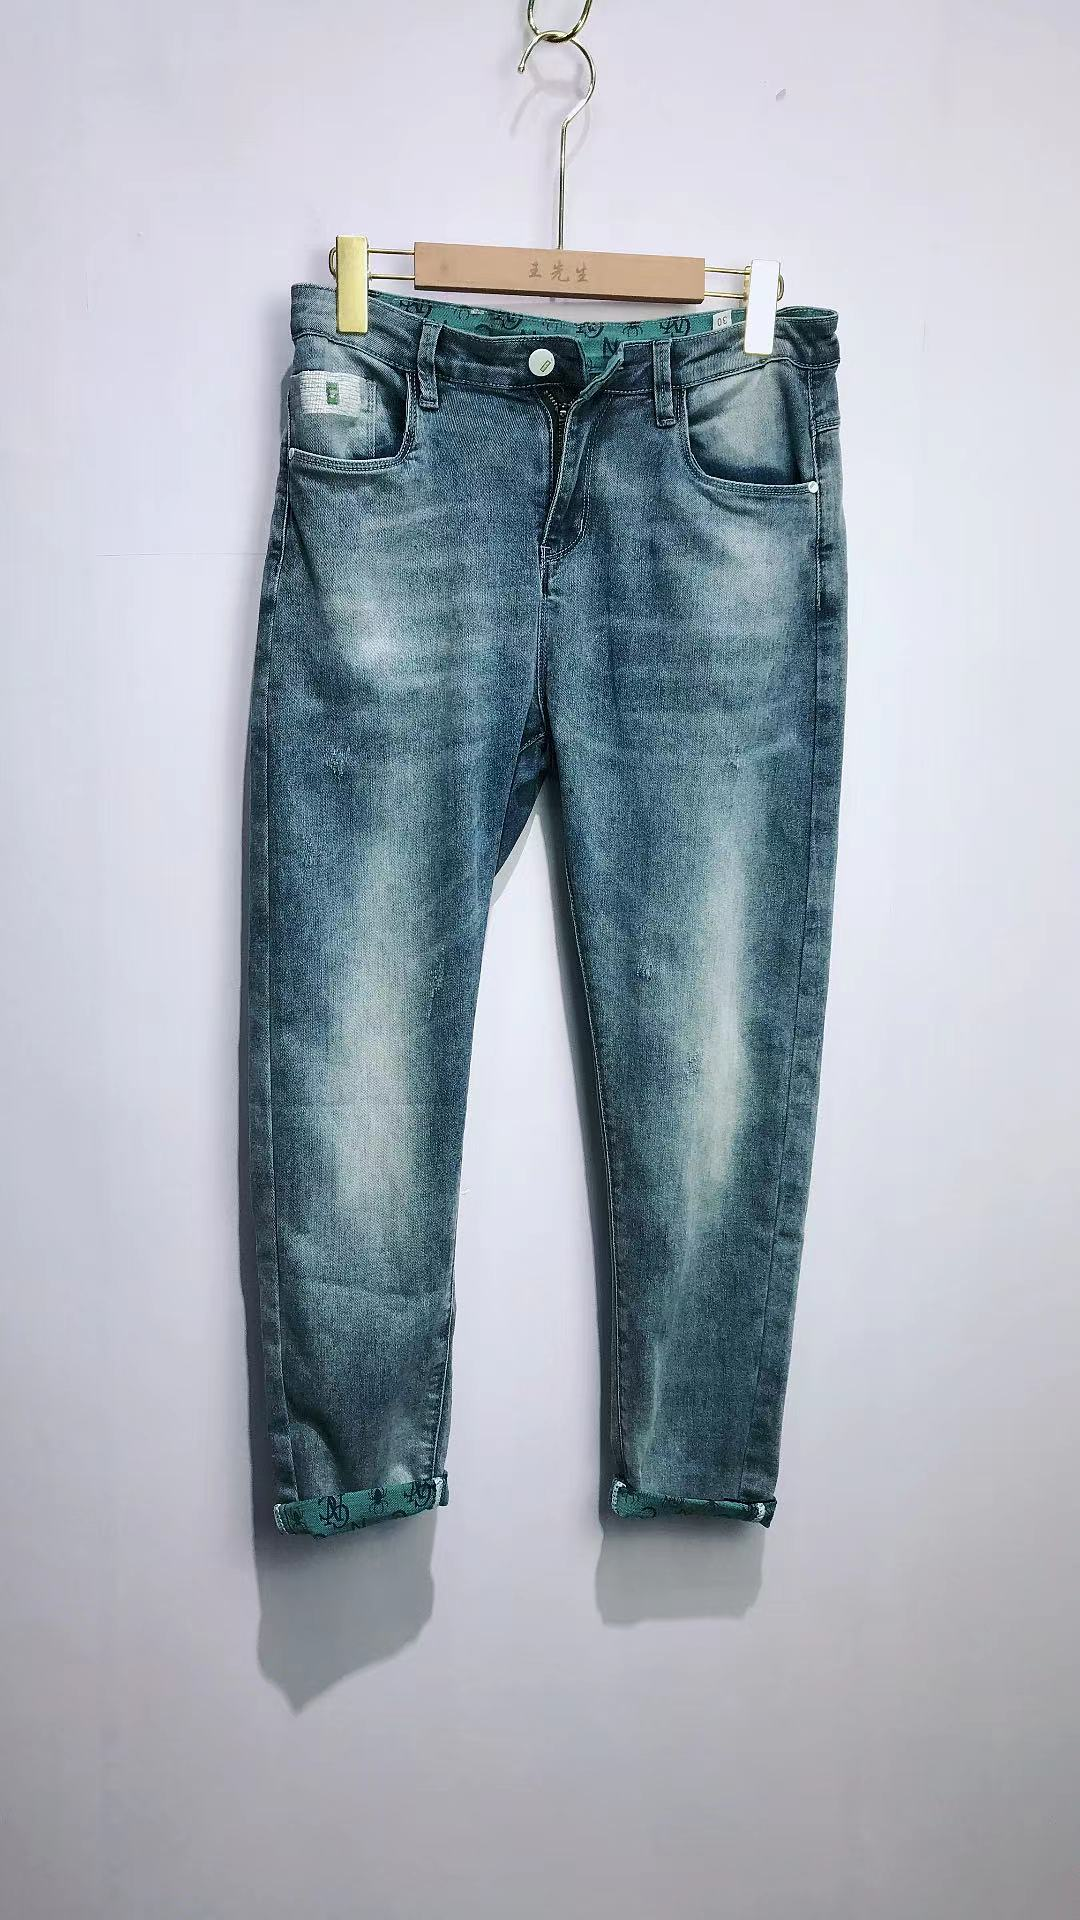 Qianers home in early autumn 2021 new fashion versatile large washed denim fabric printed Leggings jeans mens